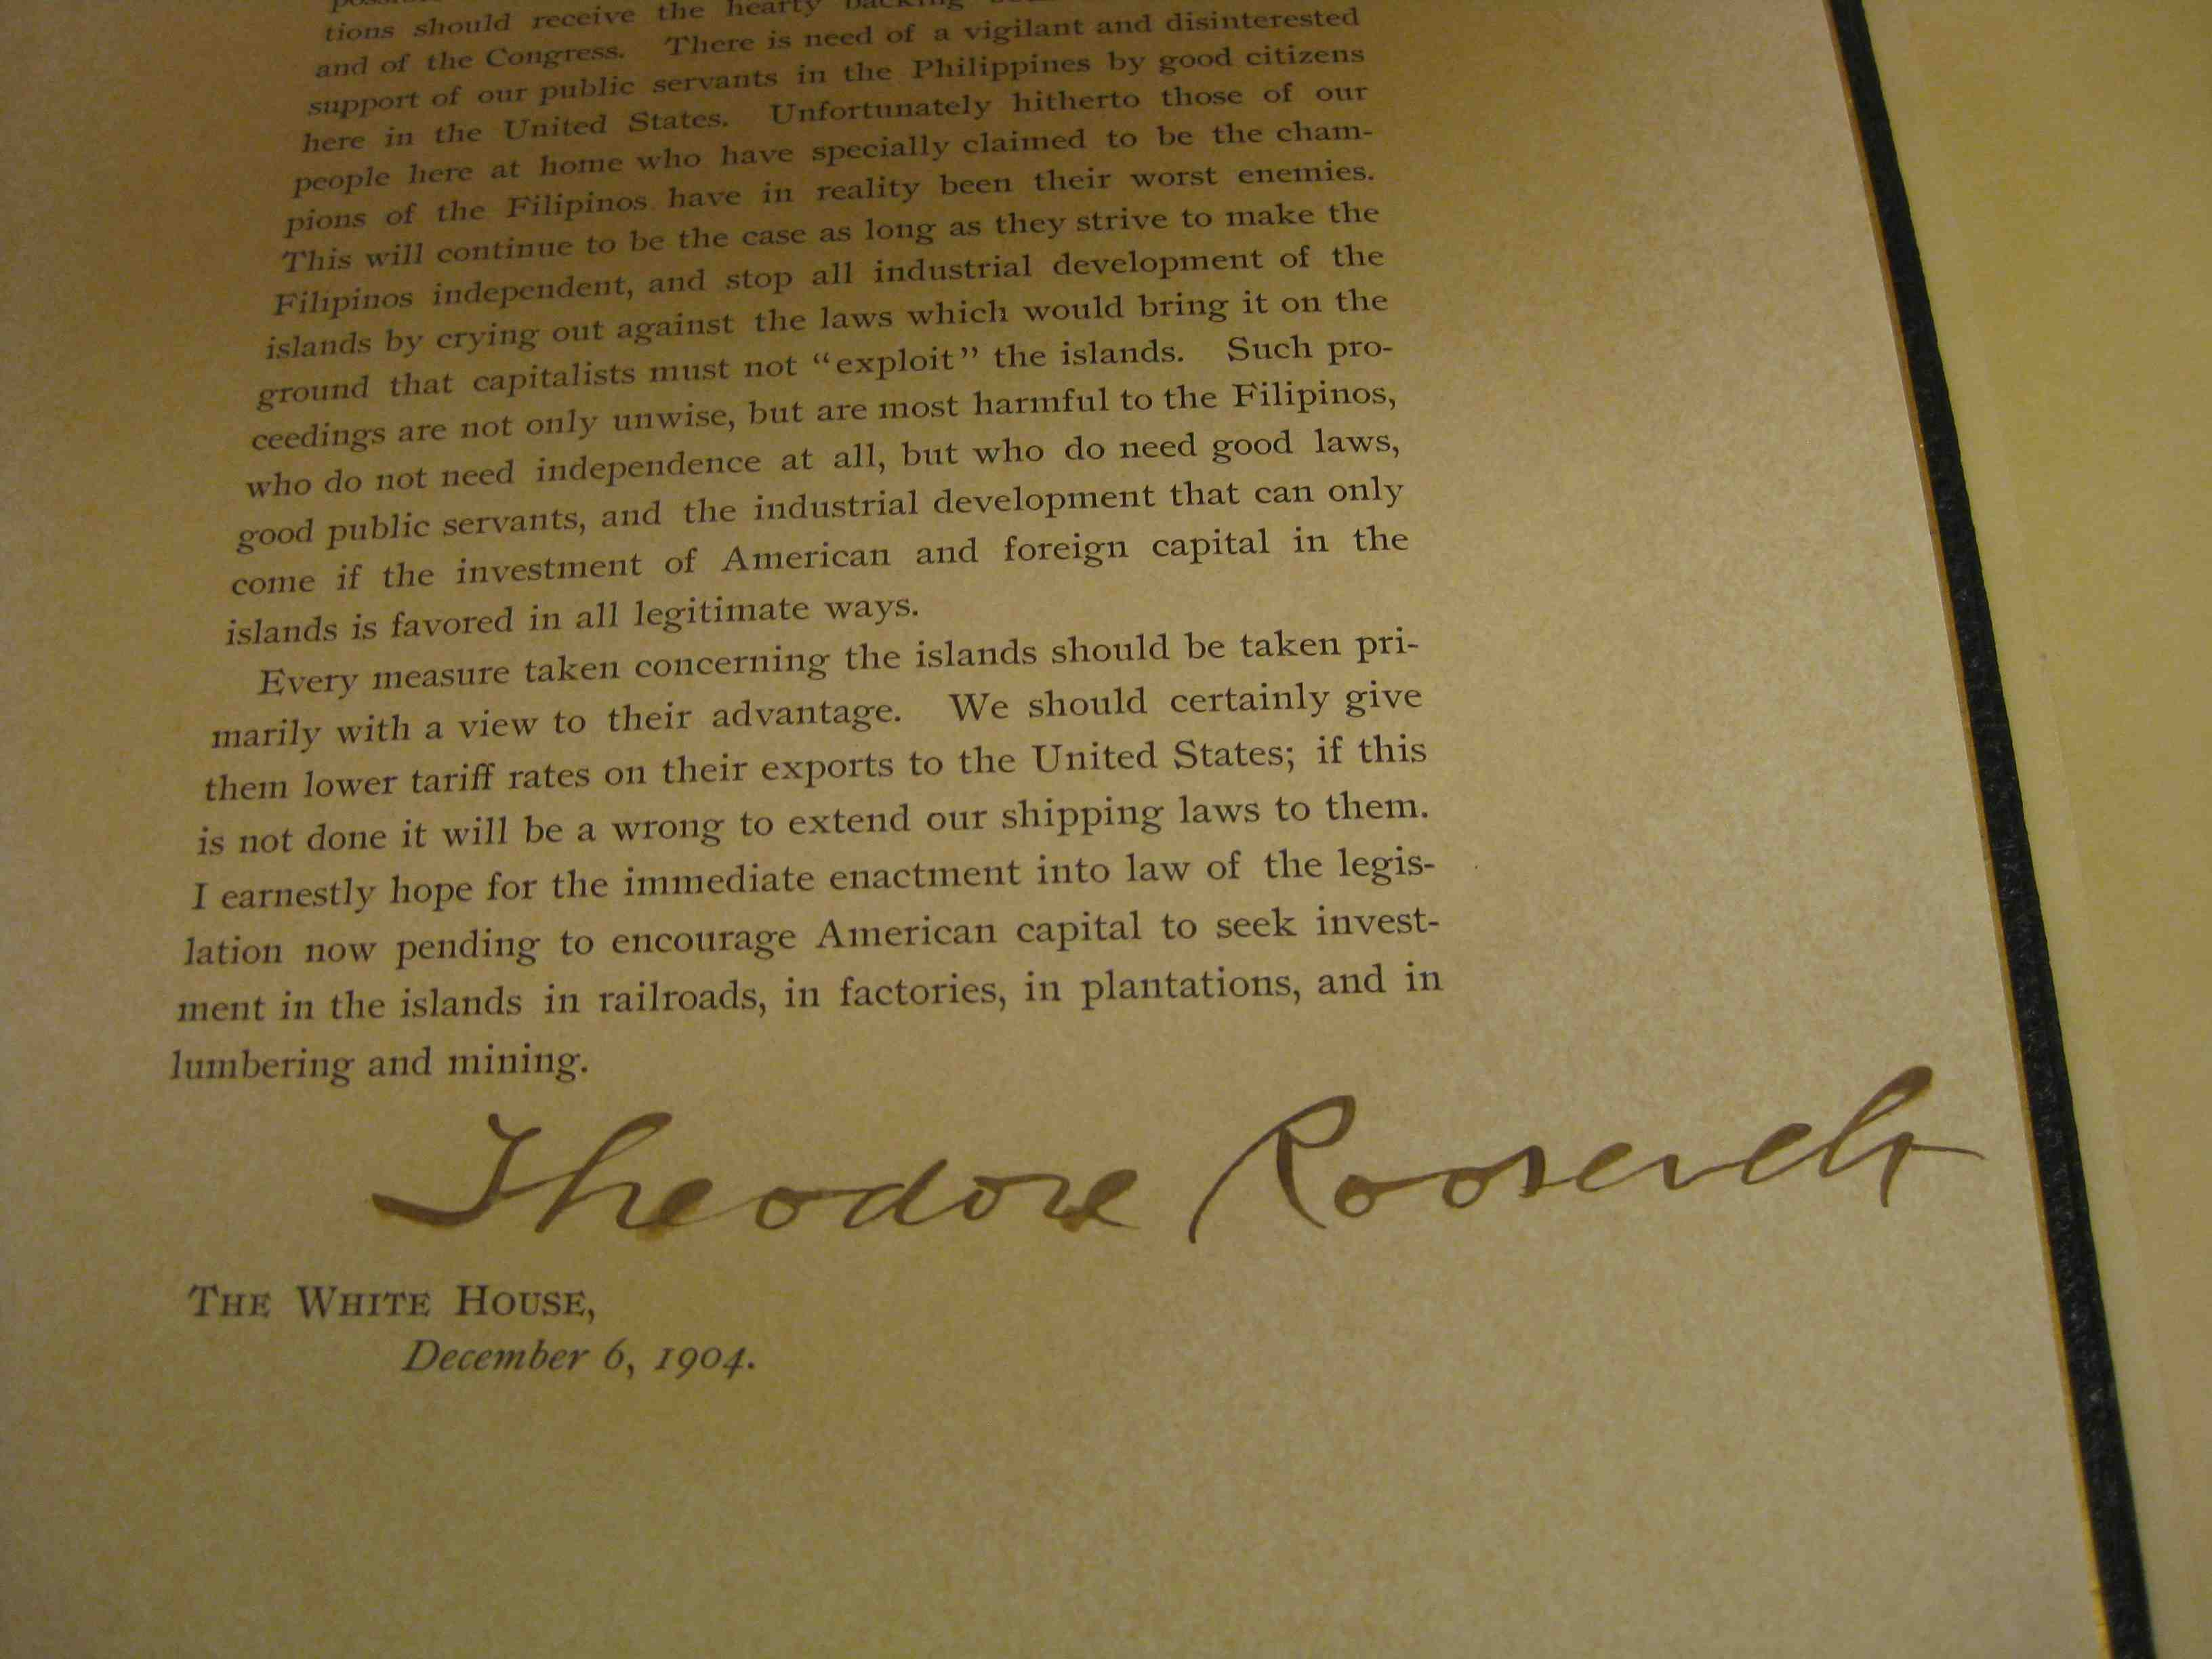 roosevelts corollary to the monroe doctrine essay The roosevelt corollary to the monroe doctrine asserted the right of the us government to intervene in the affairs of latin american countries while maintaining.